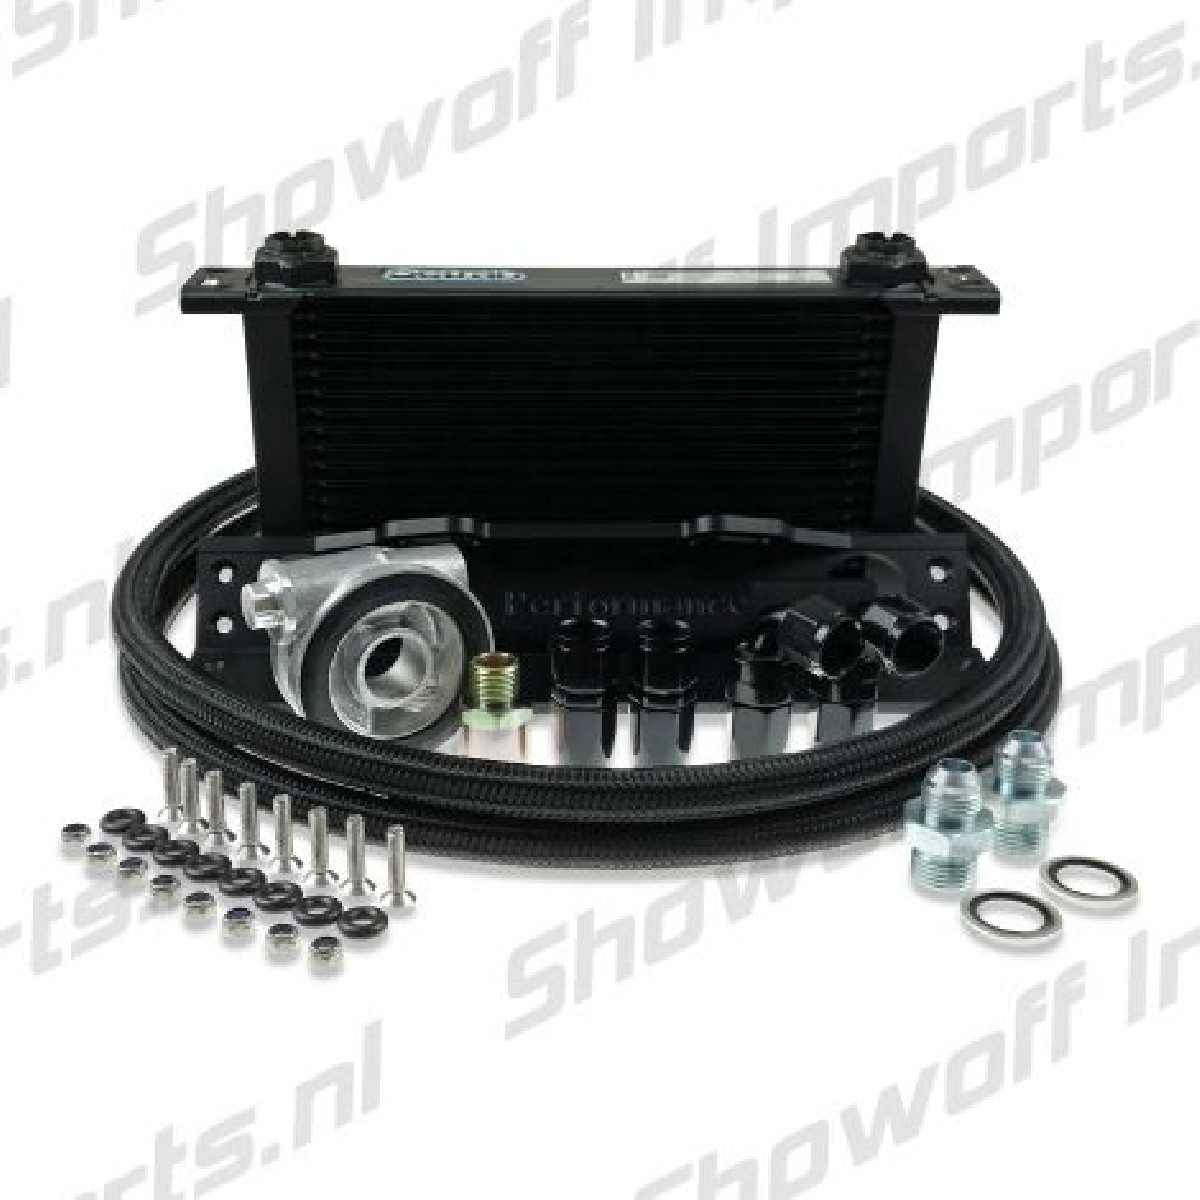 Honda Prelude/Accord 90-99 Oil Cooler Kit HEL/SETRAB 13 Row